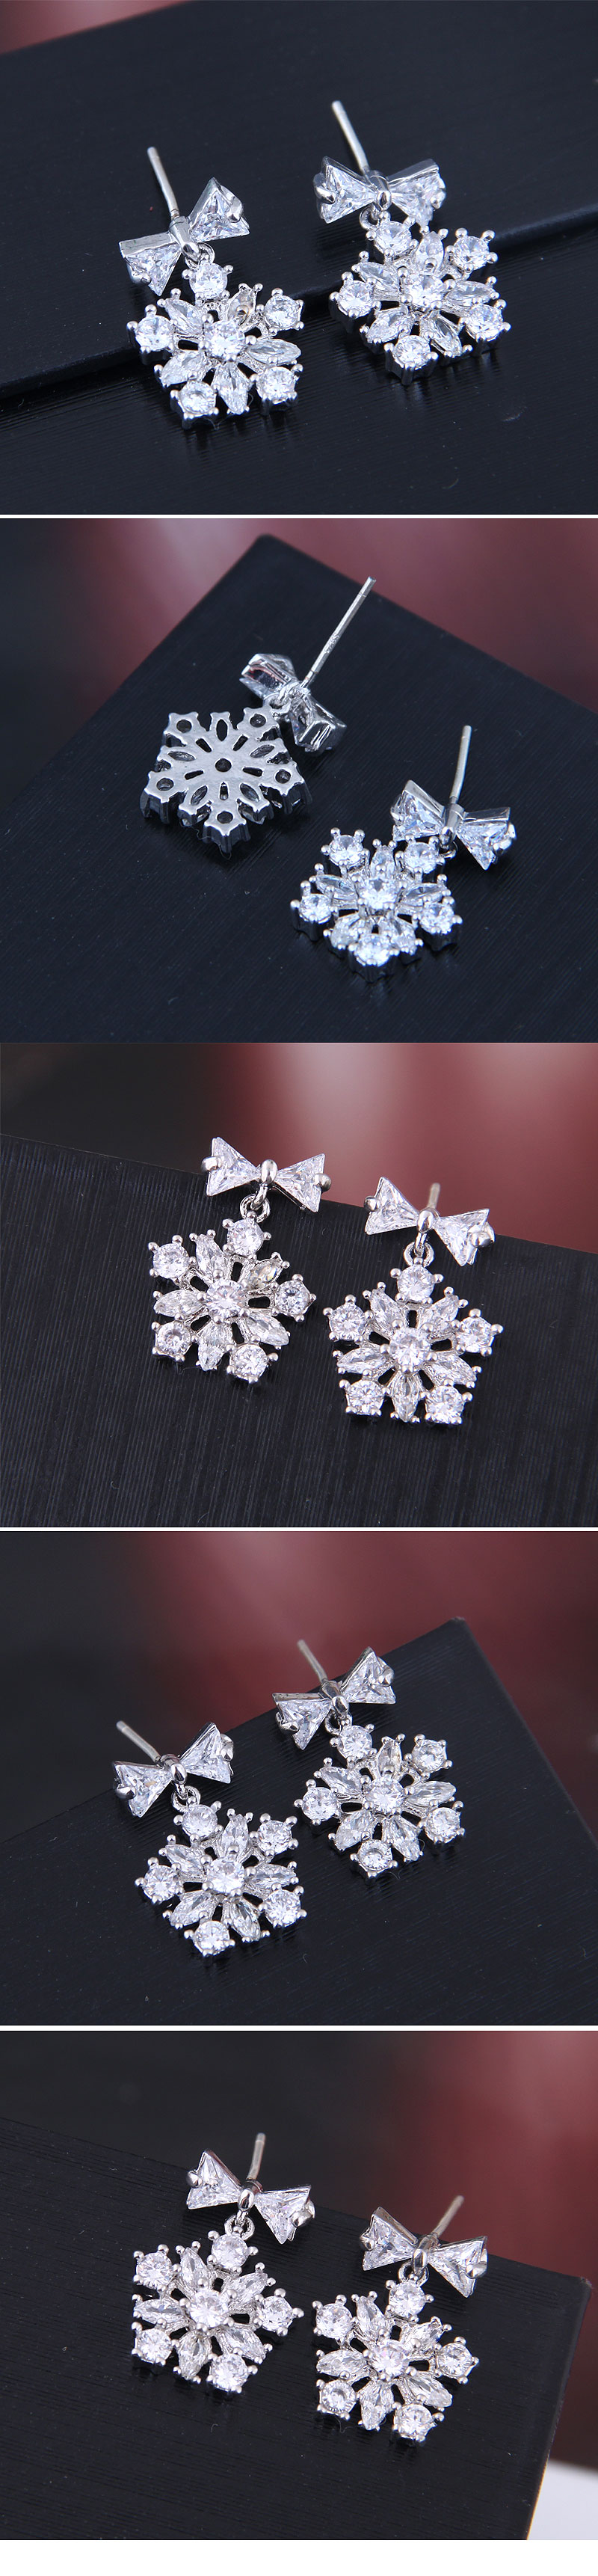 925 Silver Pin Korean Fashion Studded Snowflake Stud Earrings wholesales yiwu suppliers china NHSC203734